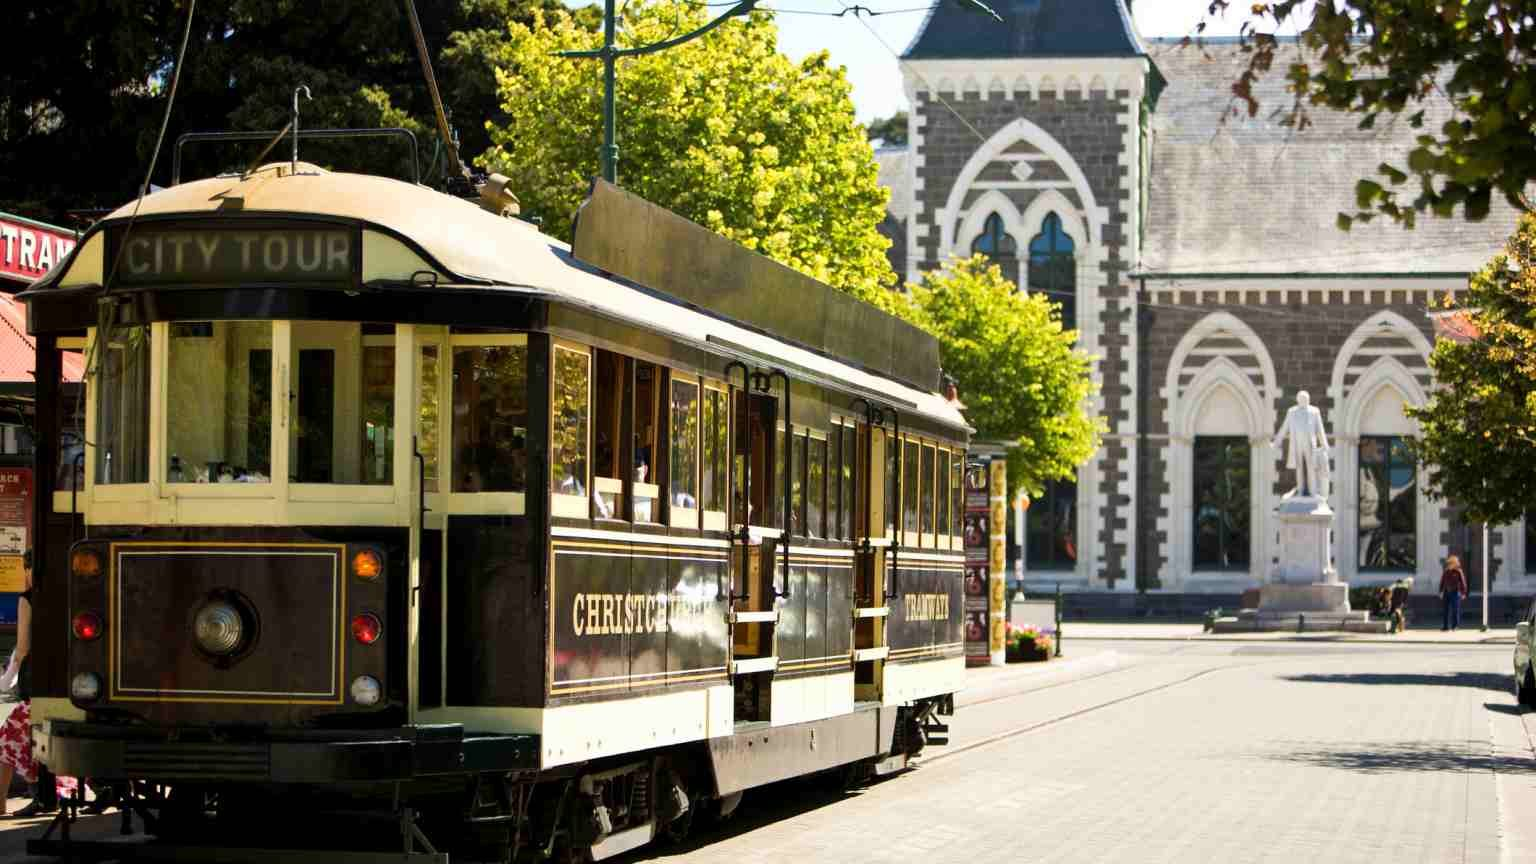 Cable car with Canterbury Museum in the background, Christchurch, New Zealand